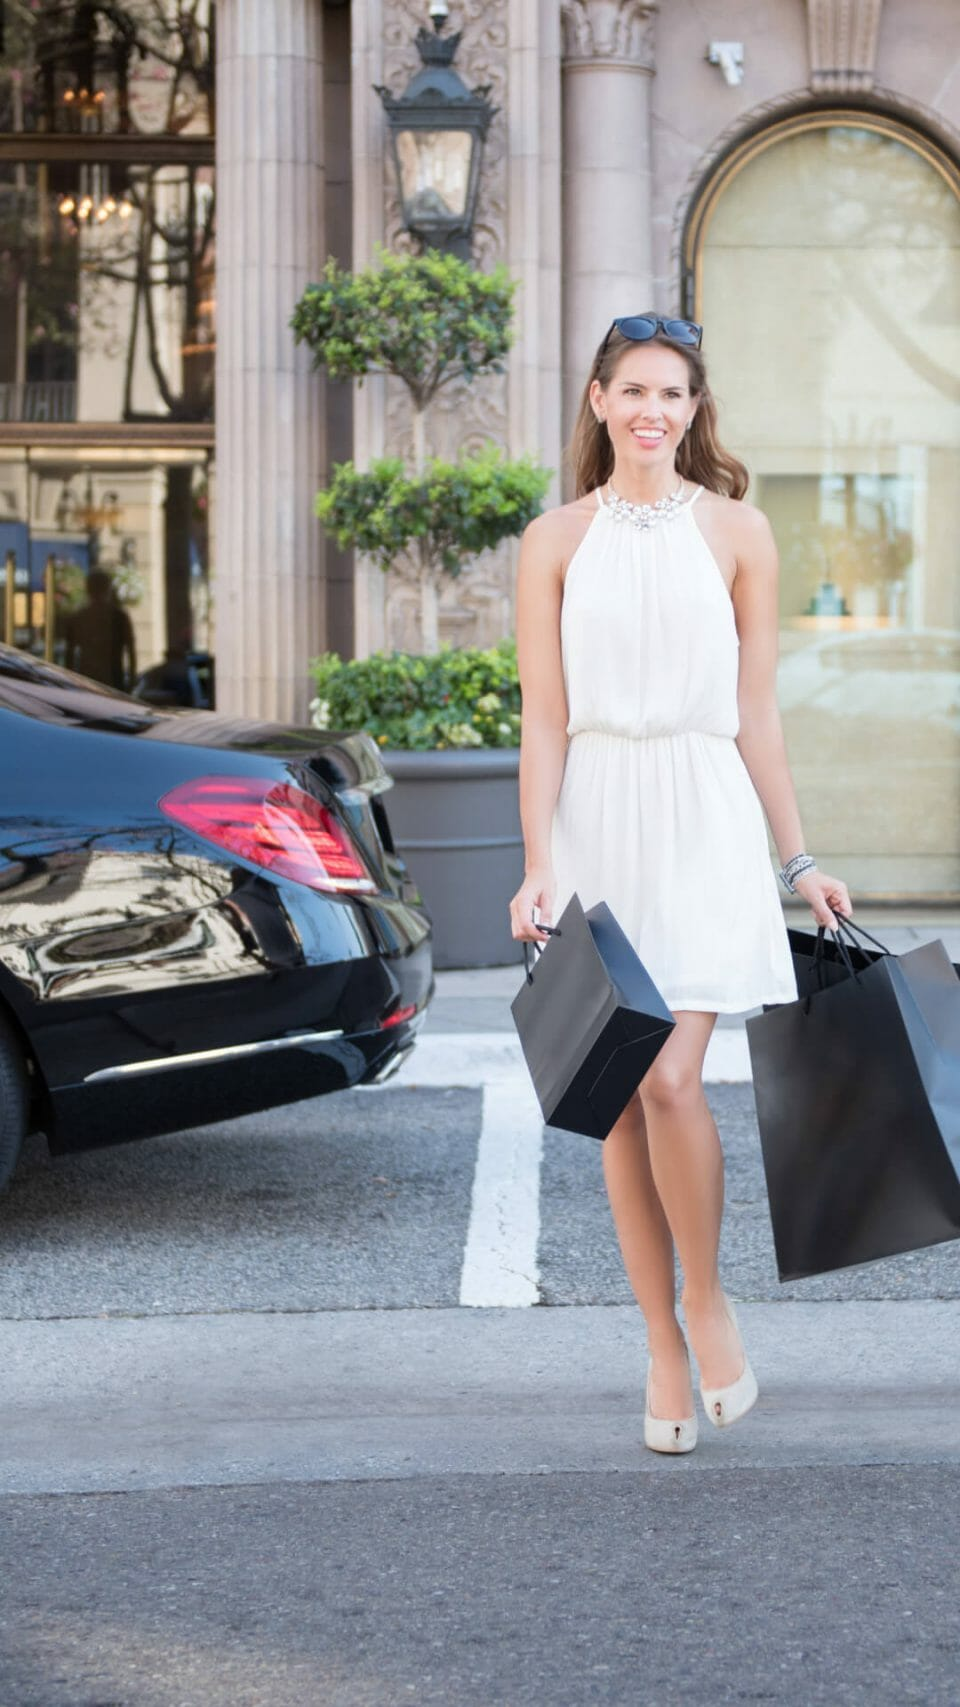 personal shop lady WEBSITE ADS 2021 Personal Shopping Services - EAT LOVE SAVOR International Luxury Lifestyle Magazine